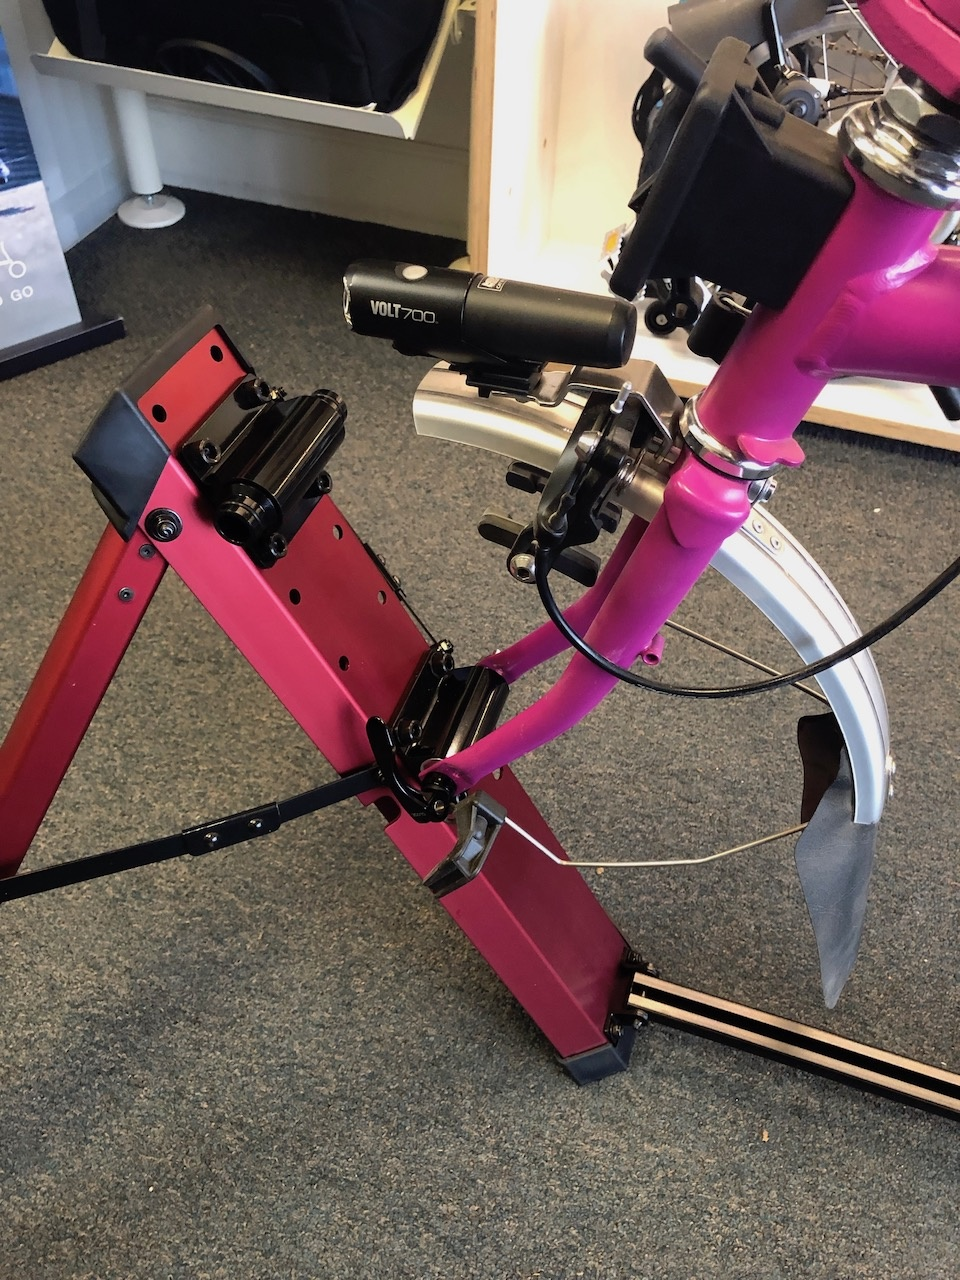 Feedback Sports Feedback Sports Omnium Over-Drive Portable Resistance Trainer